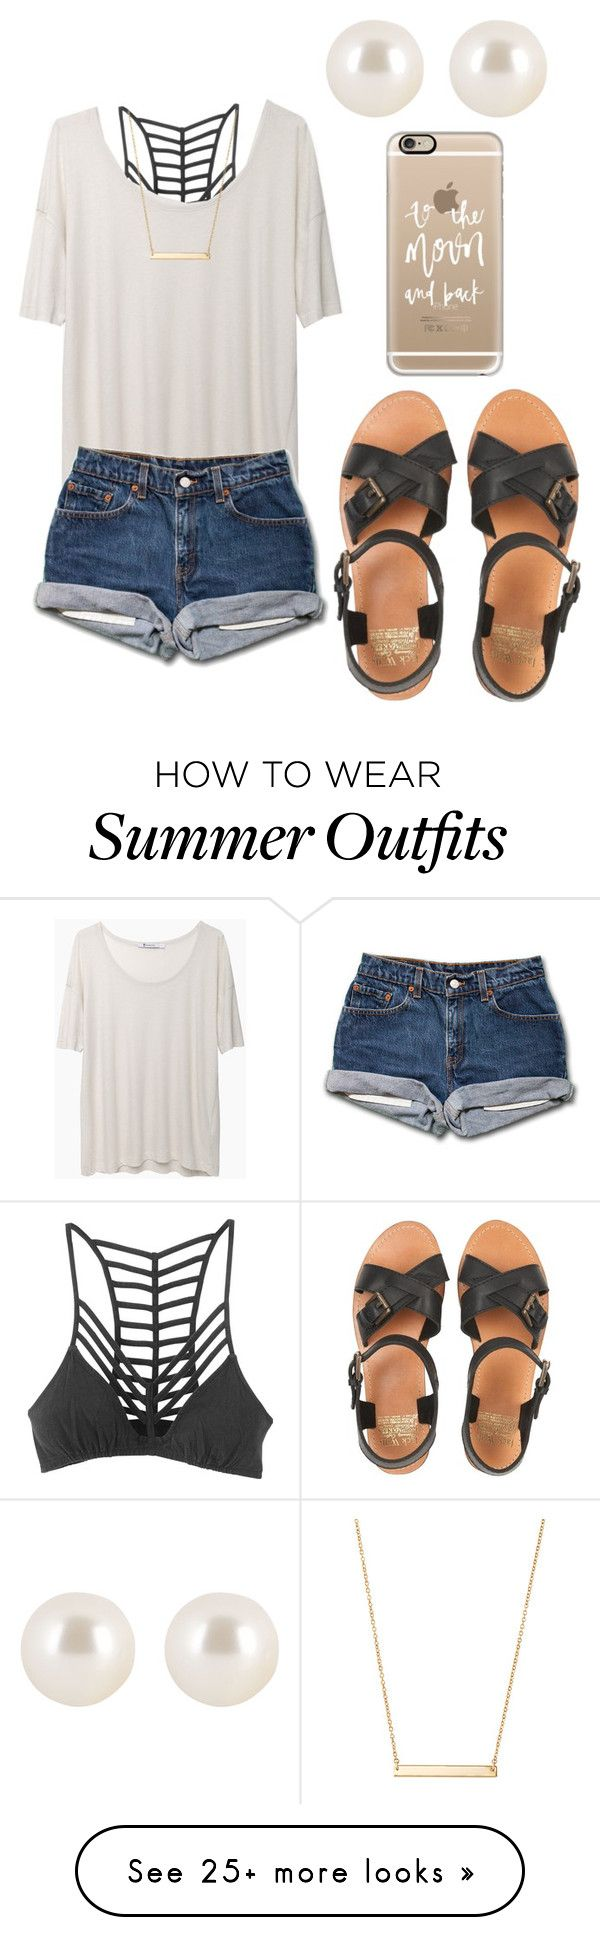 """summer outfits are always going to be my thing!"" by kyleemorrison on Polyvore featuring Jack Wills, RVCA, Casetify, T By Alexander Wang, Henri Bendel and Stella & Dot"